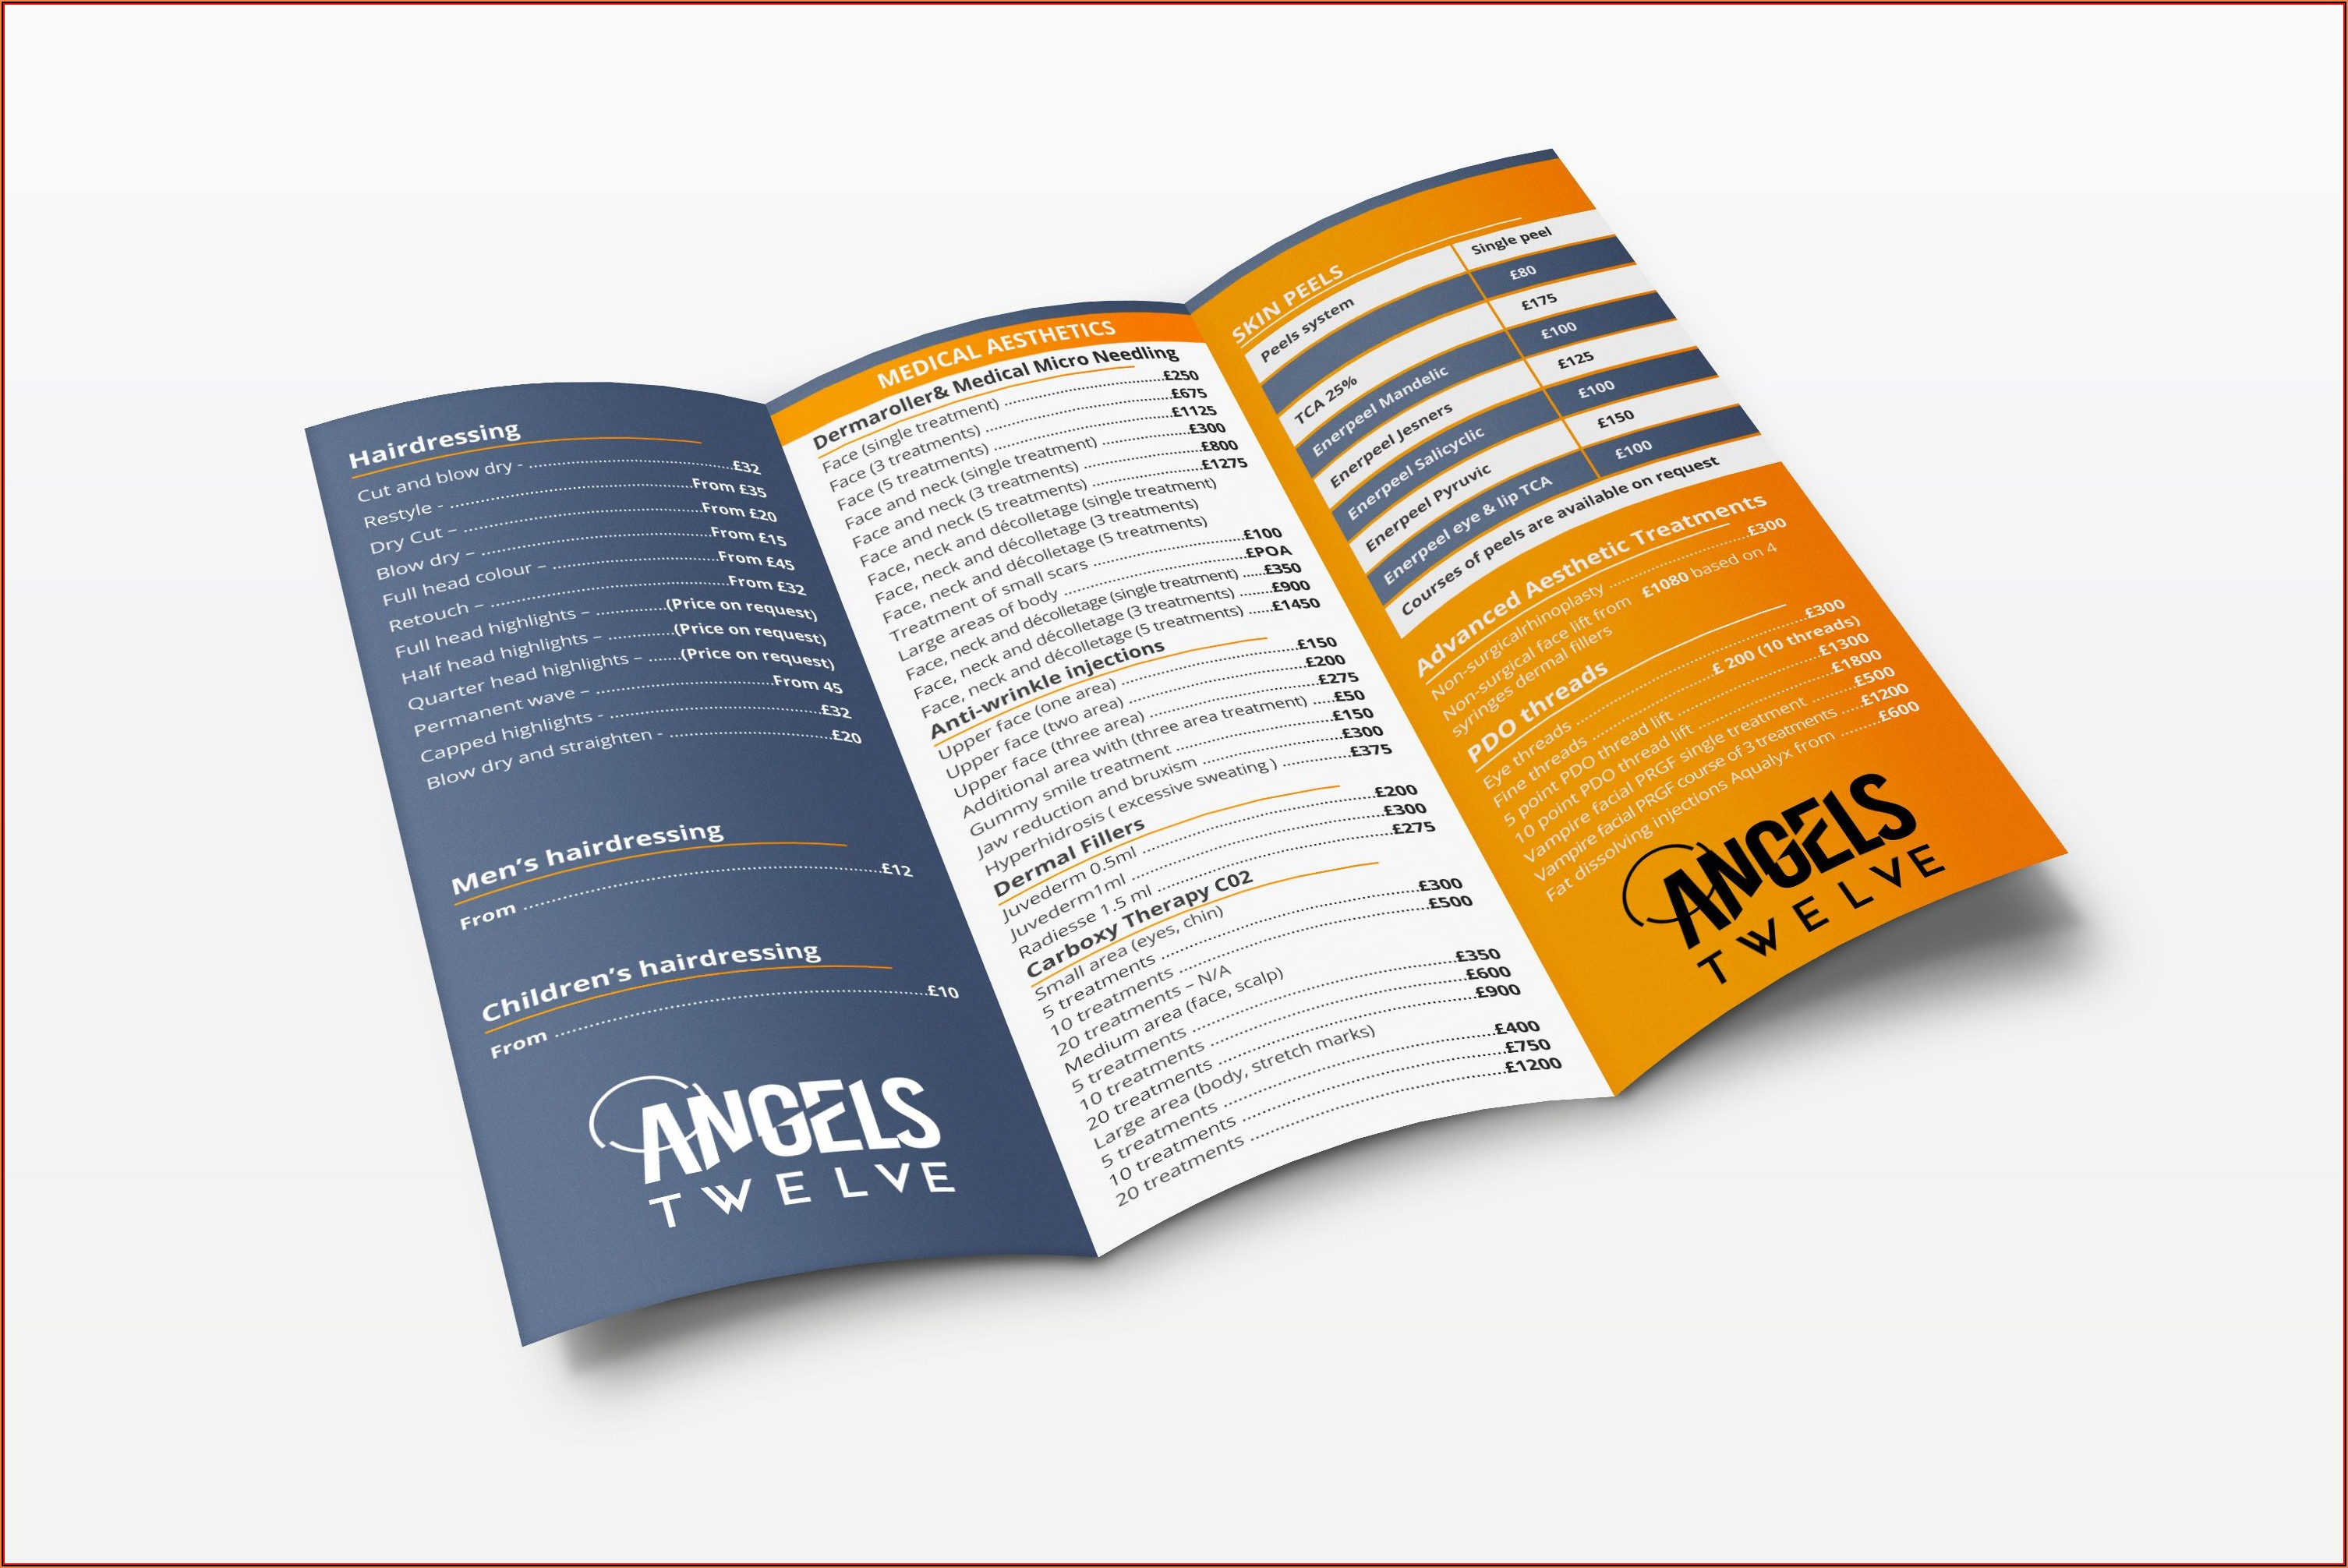 8.5 X 11 Trifold Template Psd